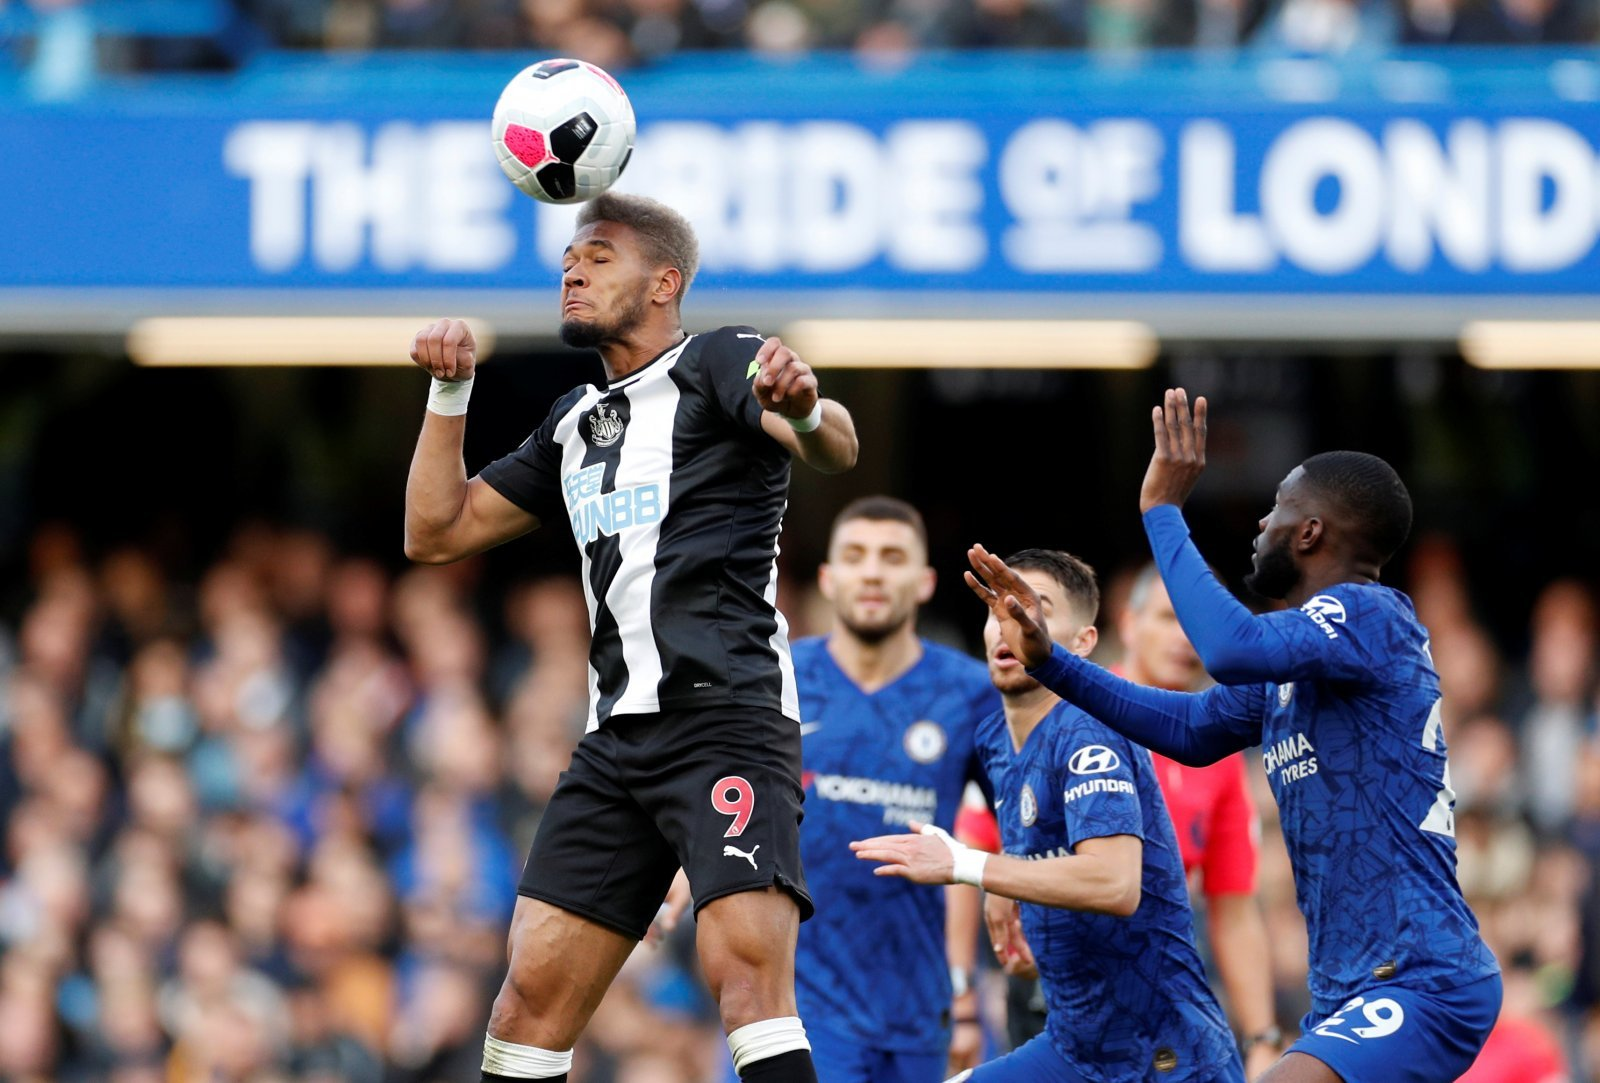 Newcastle United: Fans unsure of Joelinton after 'toothless' performance against Chelsea